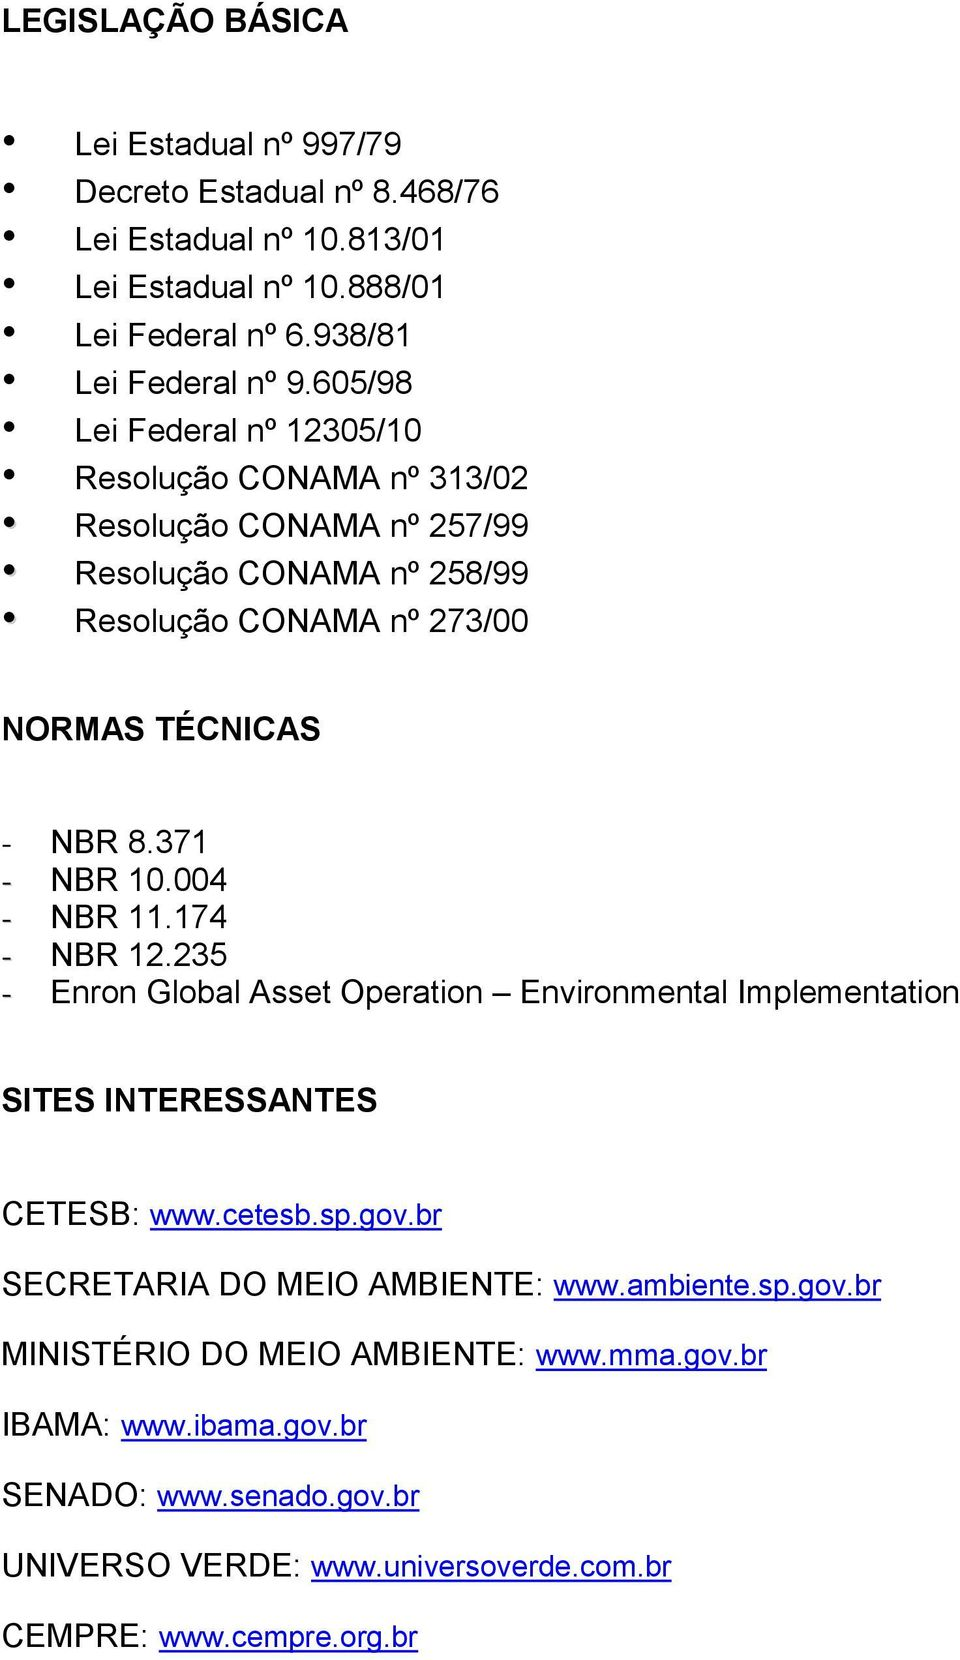 371 - NBR 10.004 - NBR 11.174 - NBR 12.235 - Enron Global Asset Operation Environmental Implementation SITES INTERESSANTES CETESB: www.cetesb.sp.gov.